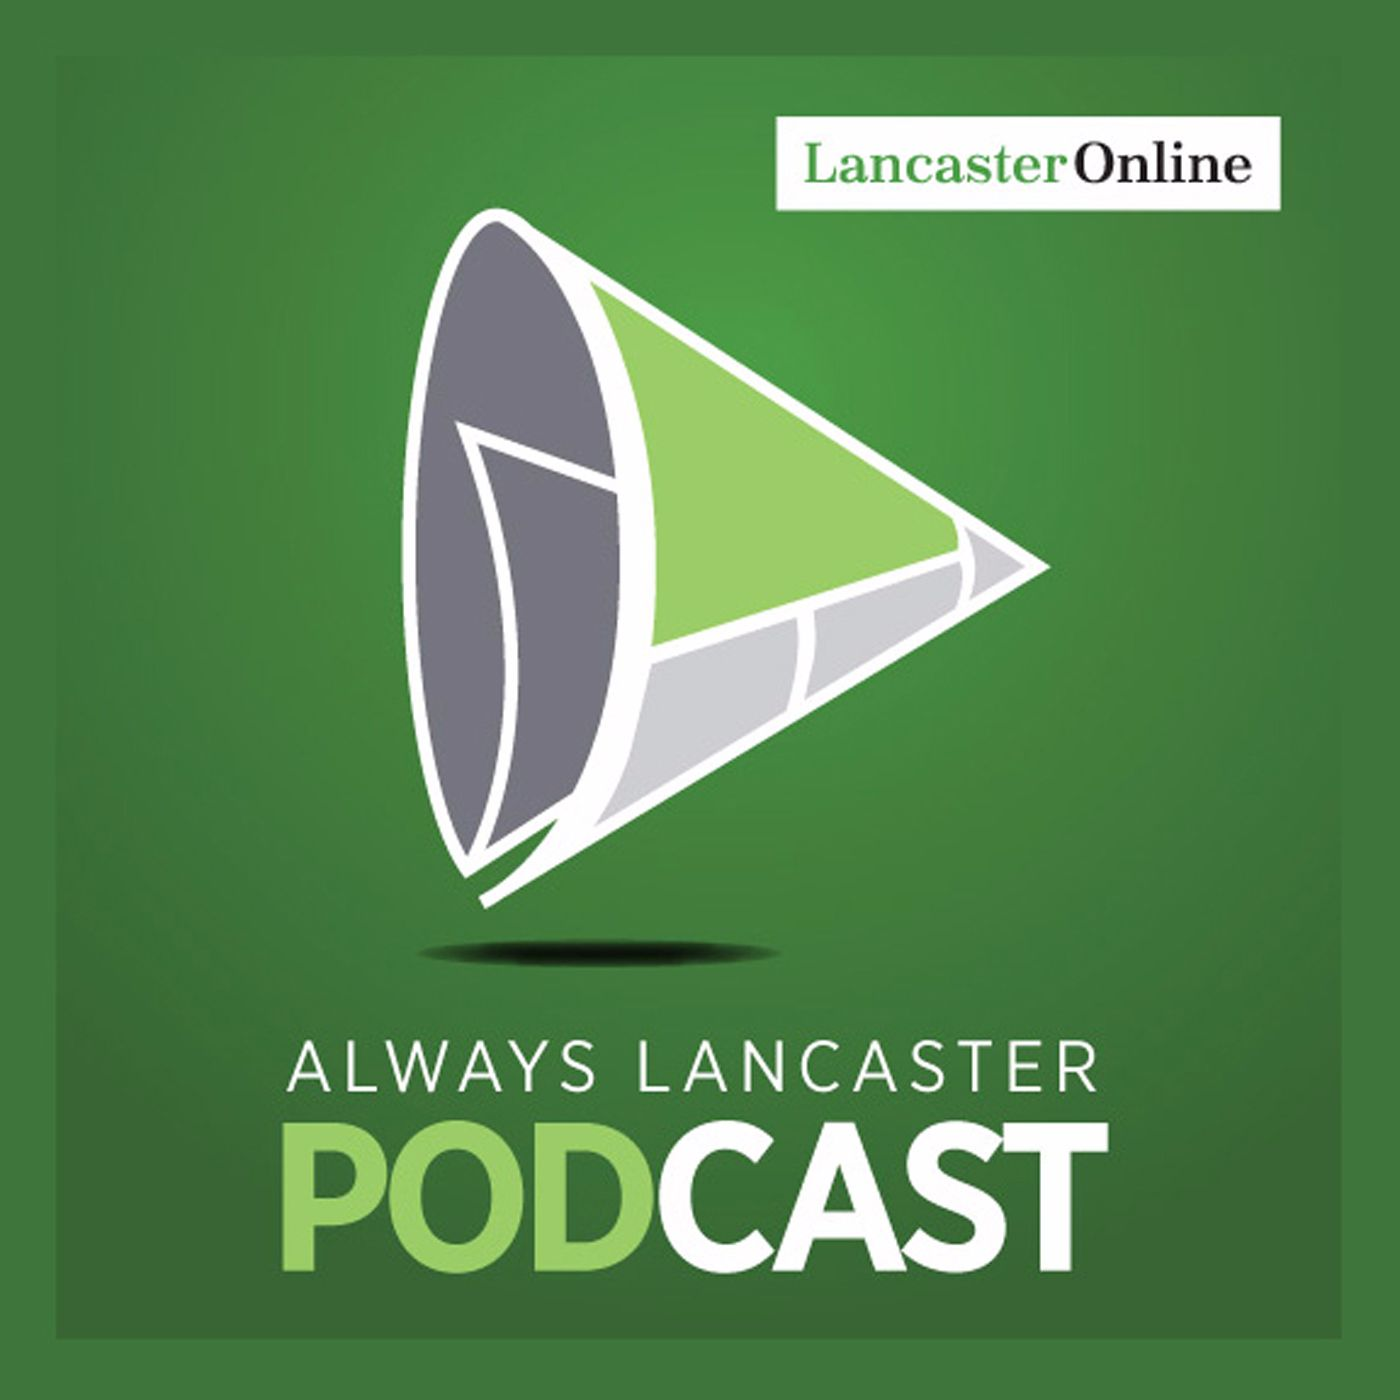 Always Lancaster Podcasts on Apple Podcasts